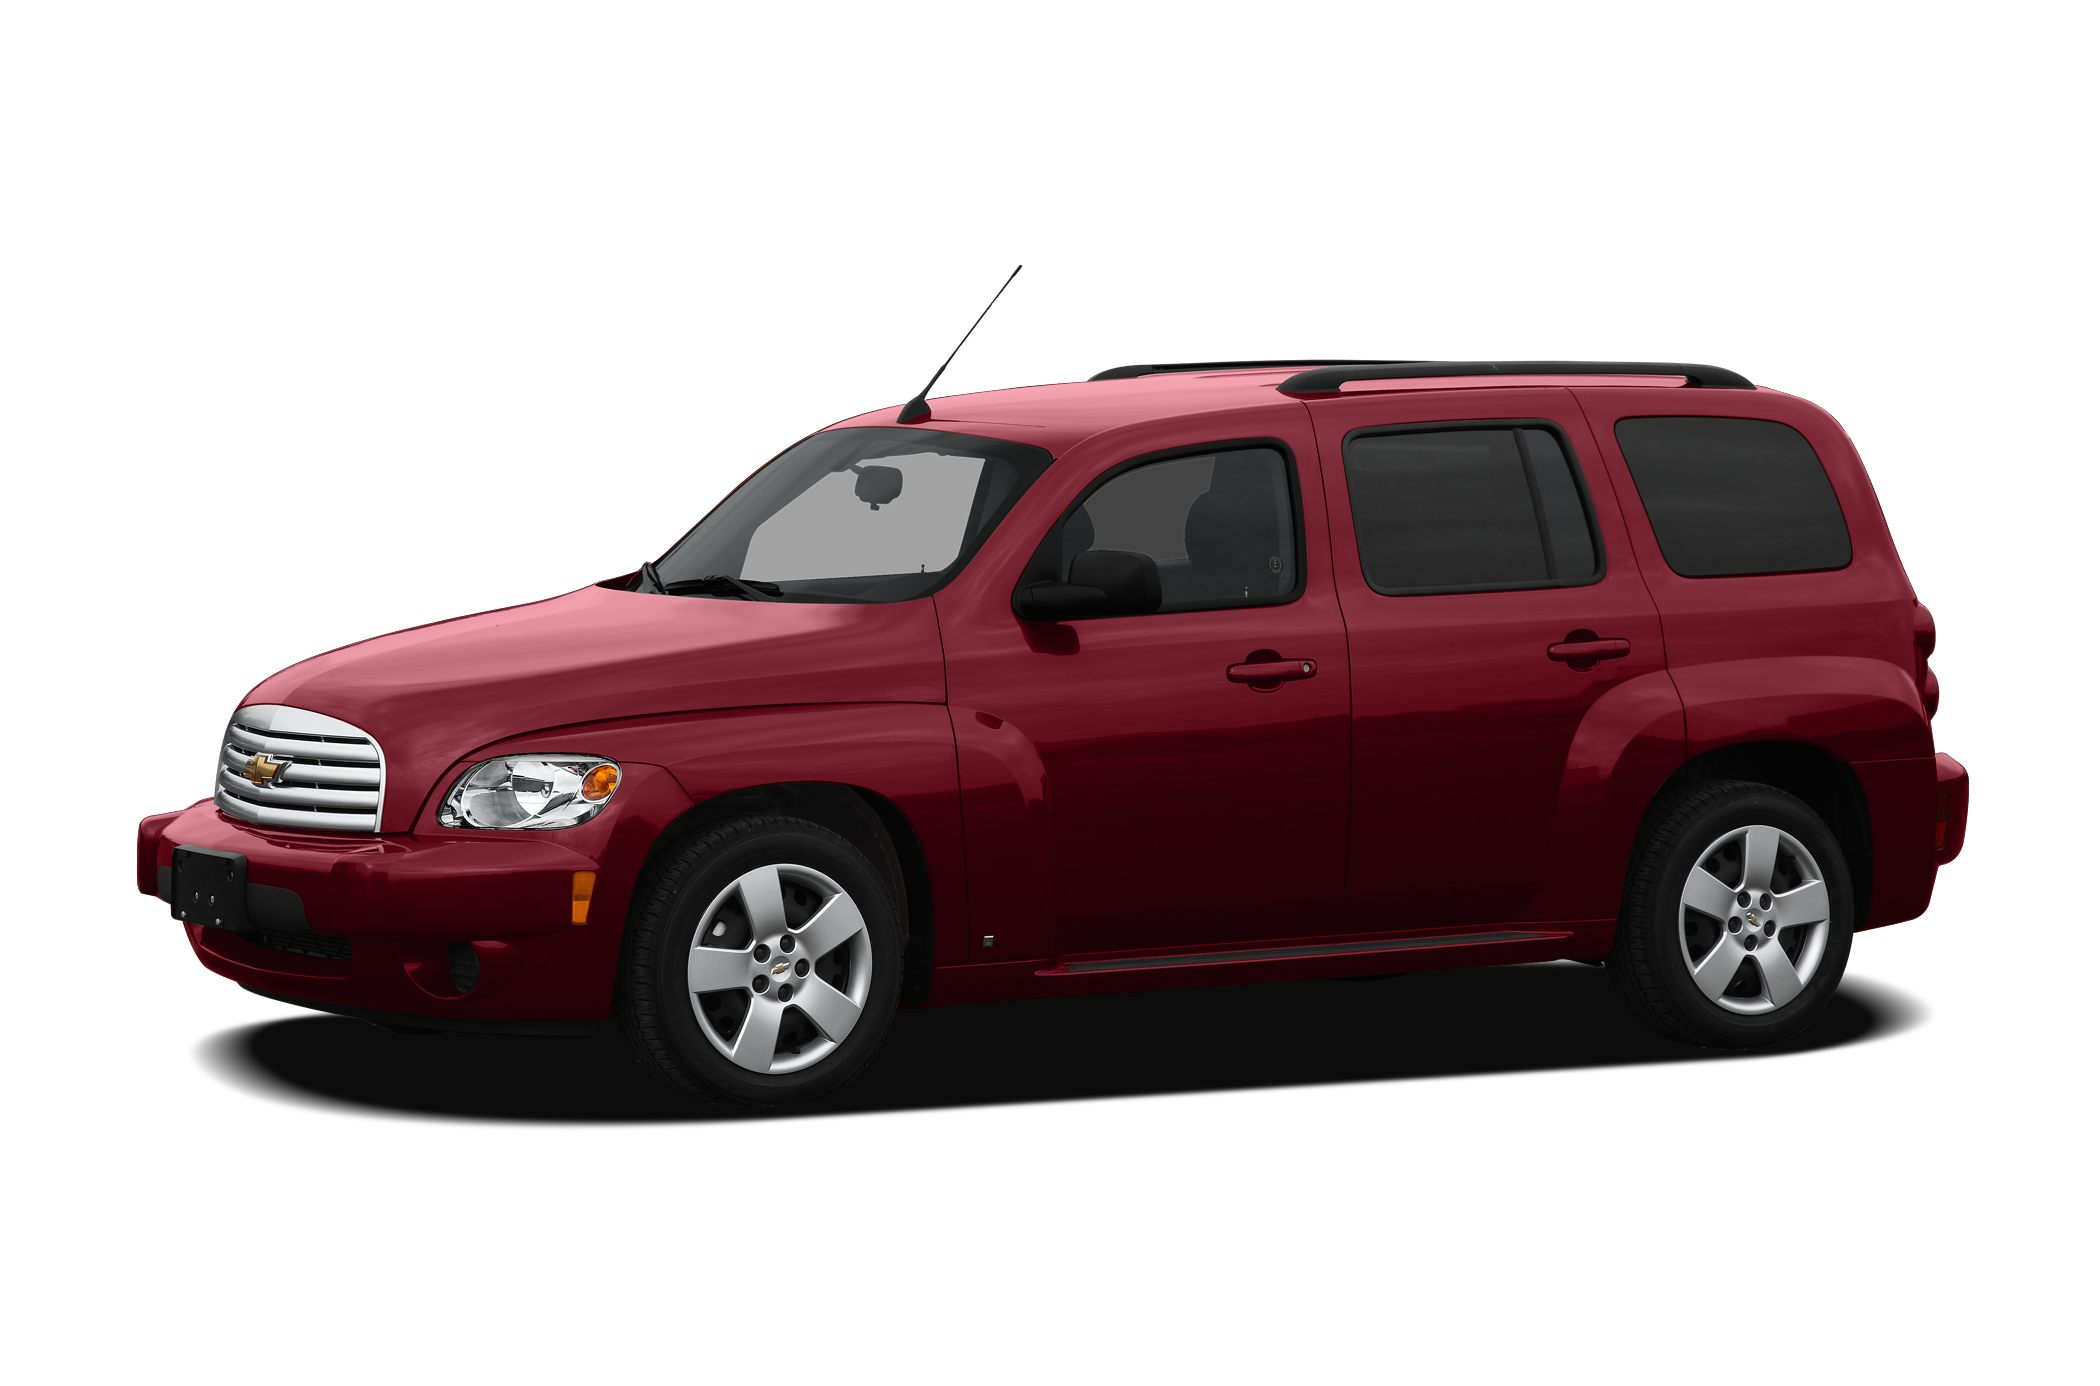 2009 Chevrolet HHR LT For Internet Pricing and InformationPlease call Teresa Brown  866-387-3798I